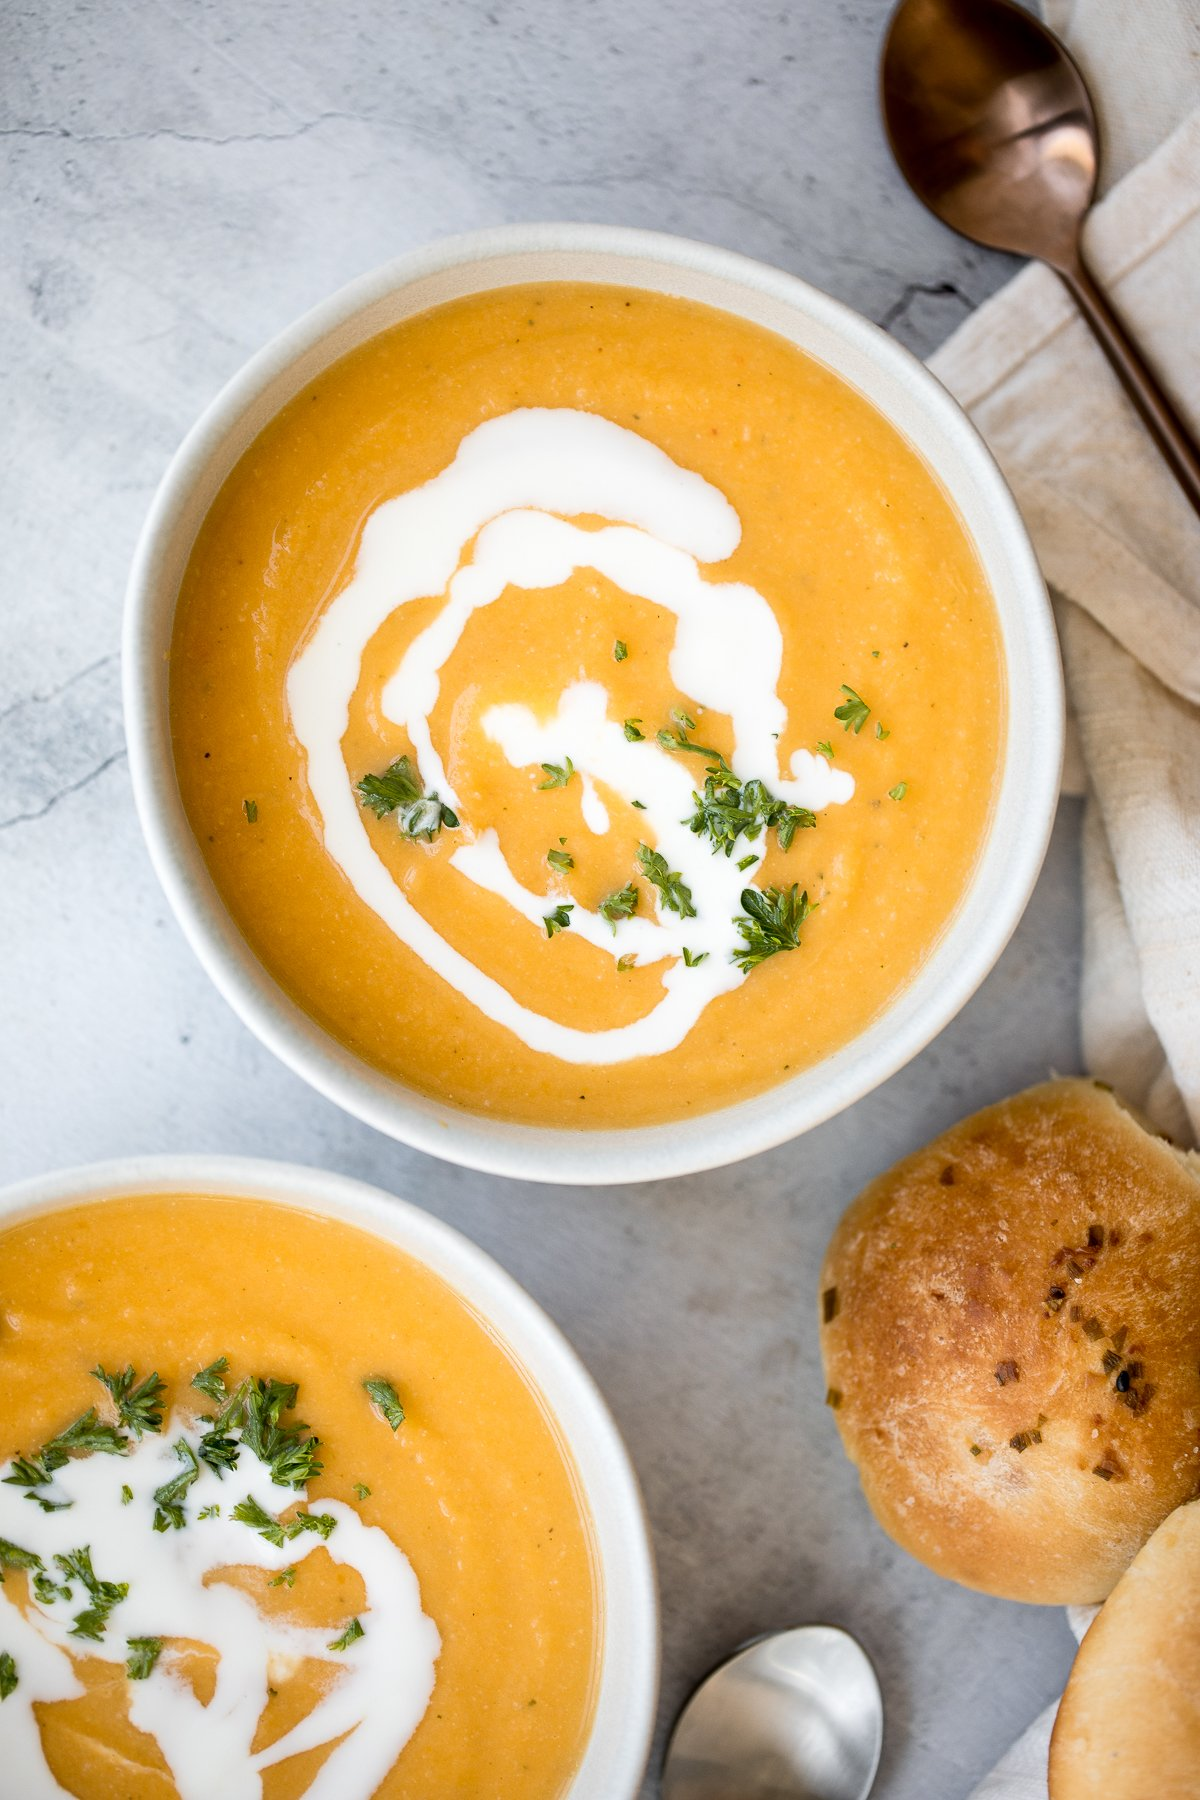 Creamy roasted butternut squash and cauliflower soup has all the fall feels and is vegan and gluten-free. Plus, it's super easy to make in a sheet pan. | aheadofthyme.com